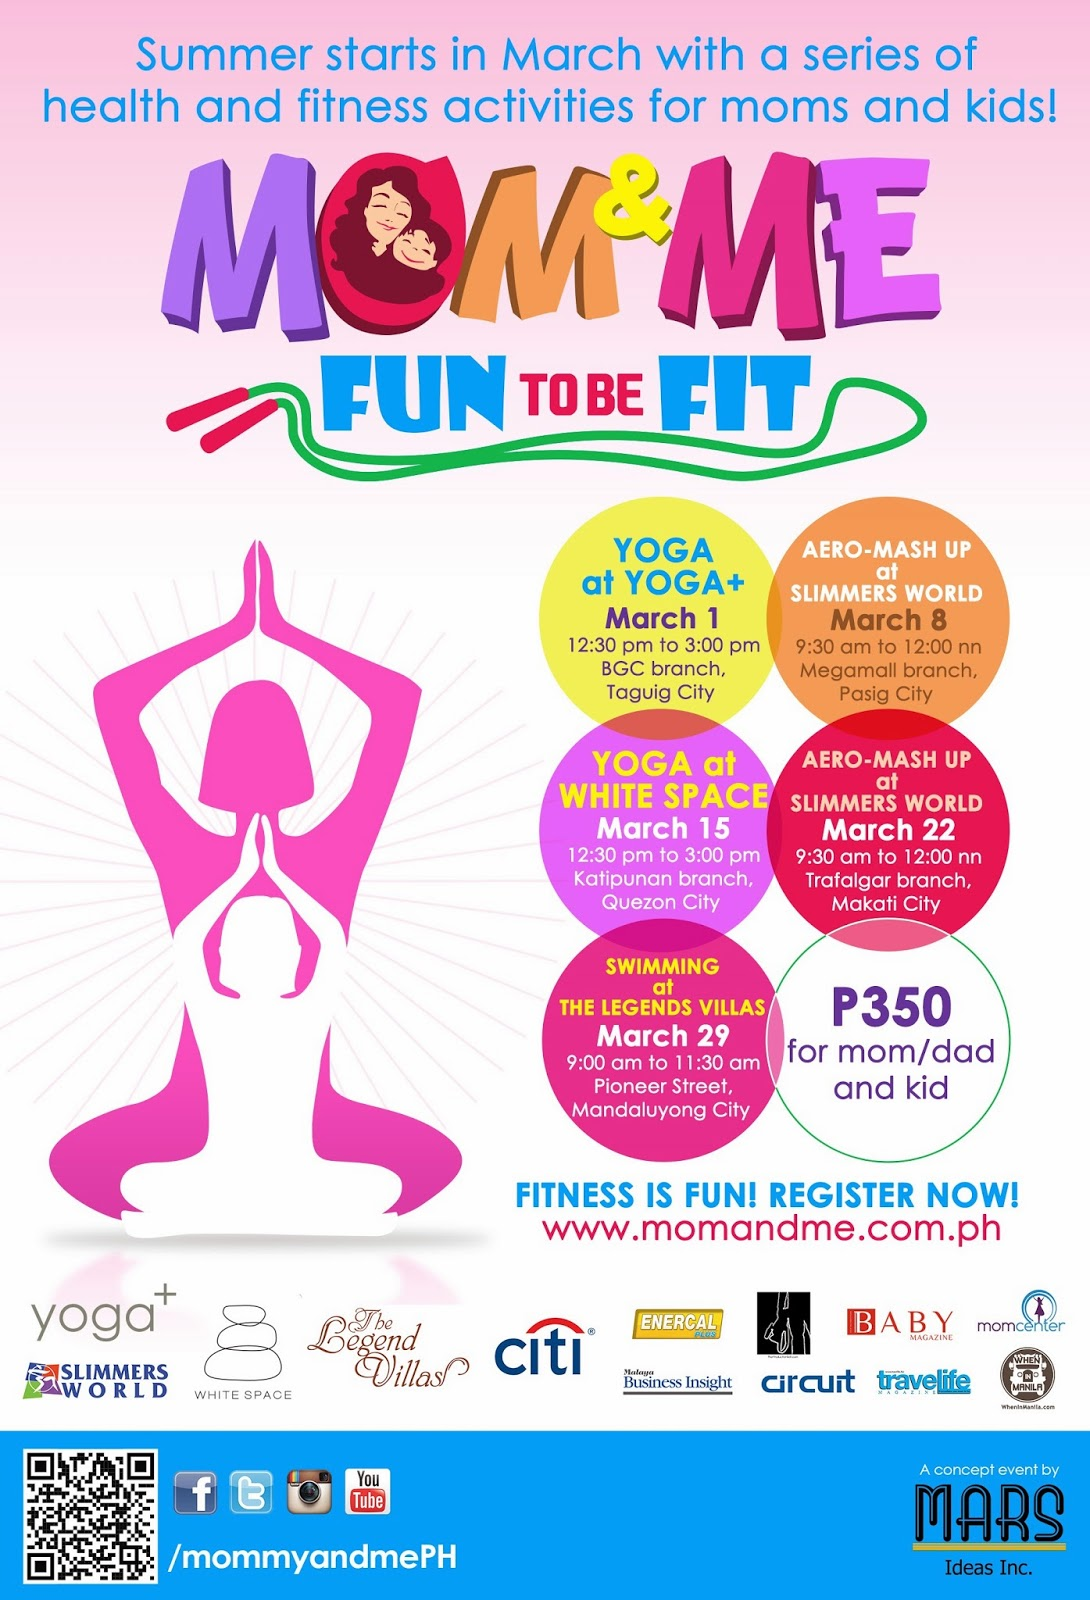 PRESS RELEASE: It's Fun To Be Fit with Mom and Me!